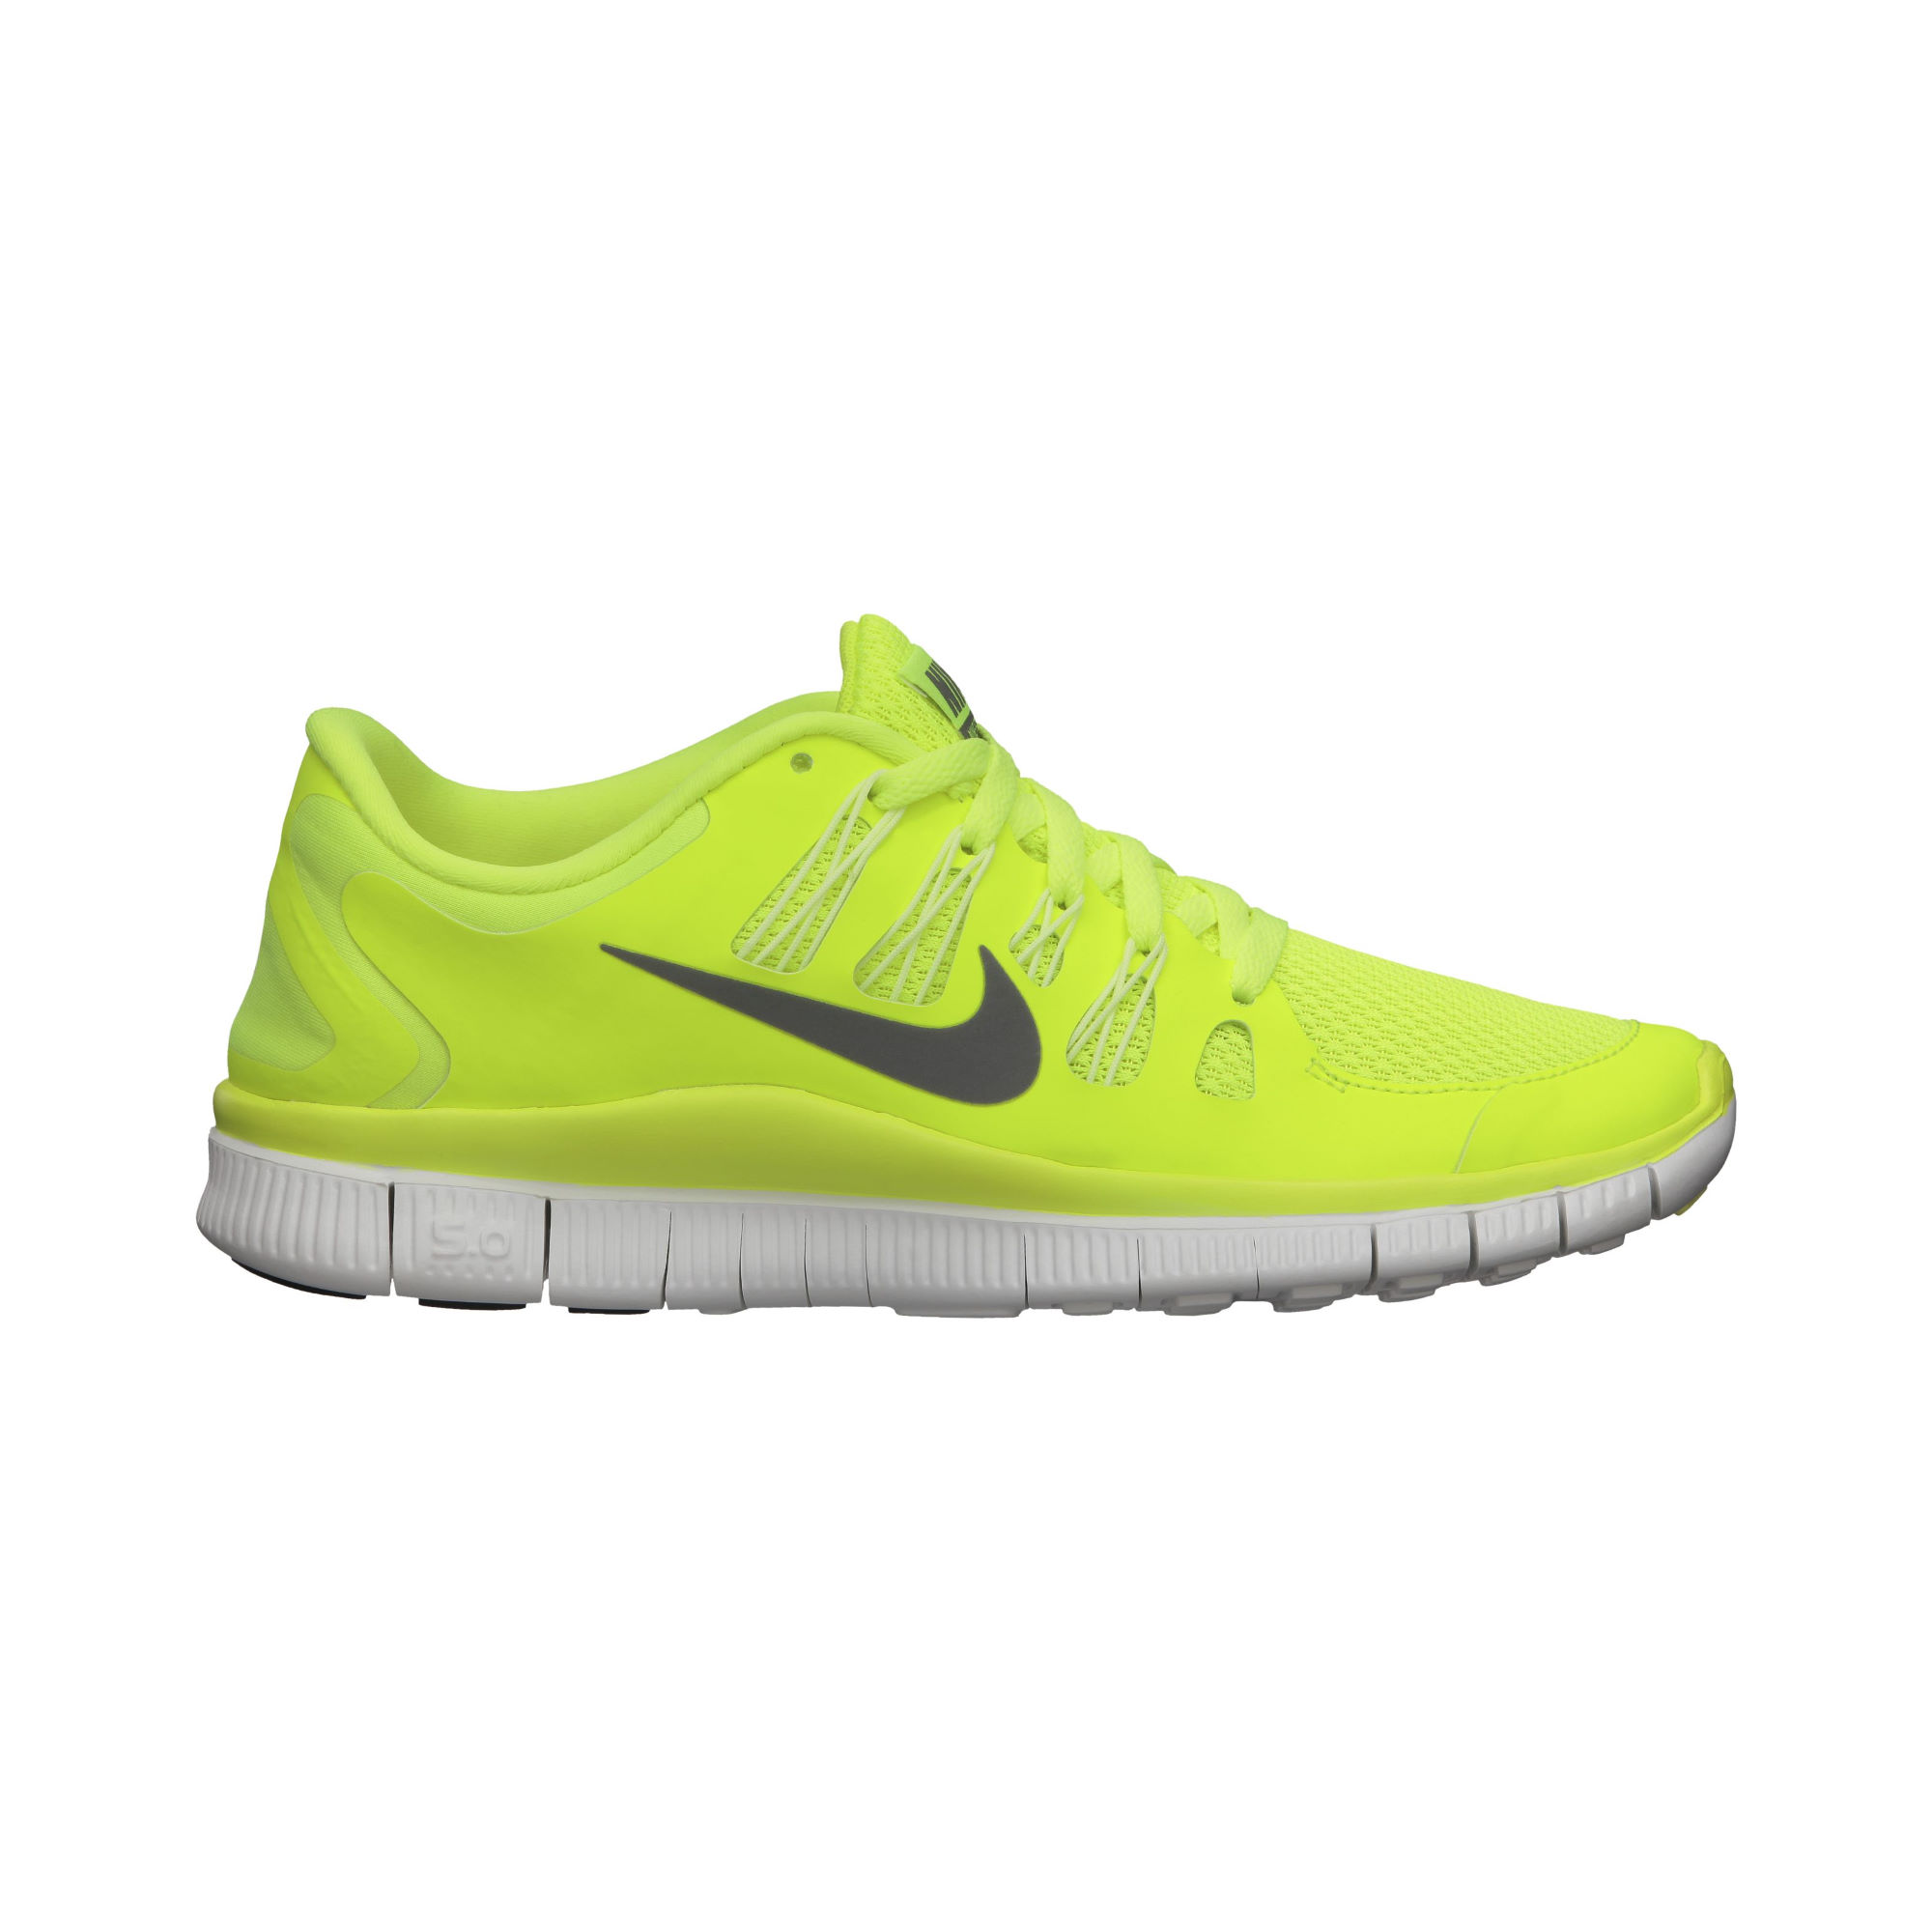 Lastest Whether It Is Running Or Opting Other Sports Like Tennis, Basketball, Badminton Etc Women Are Buying Athletic Shoes